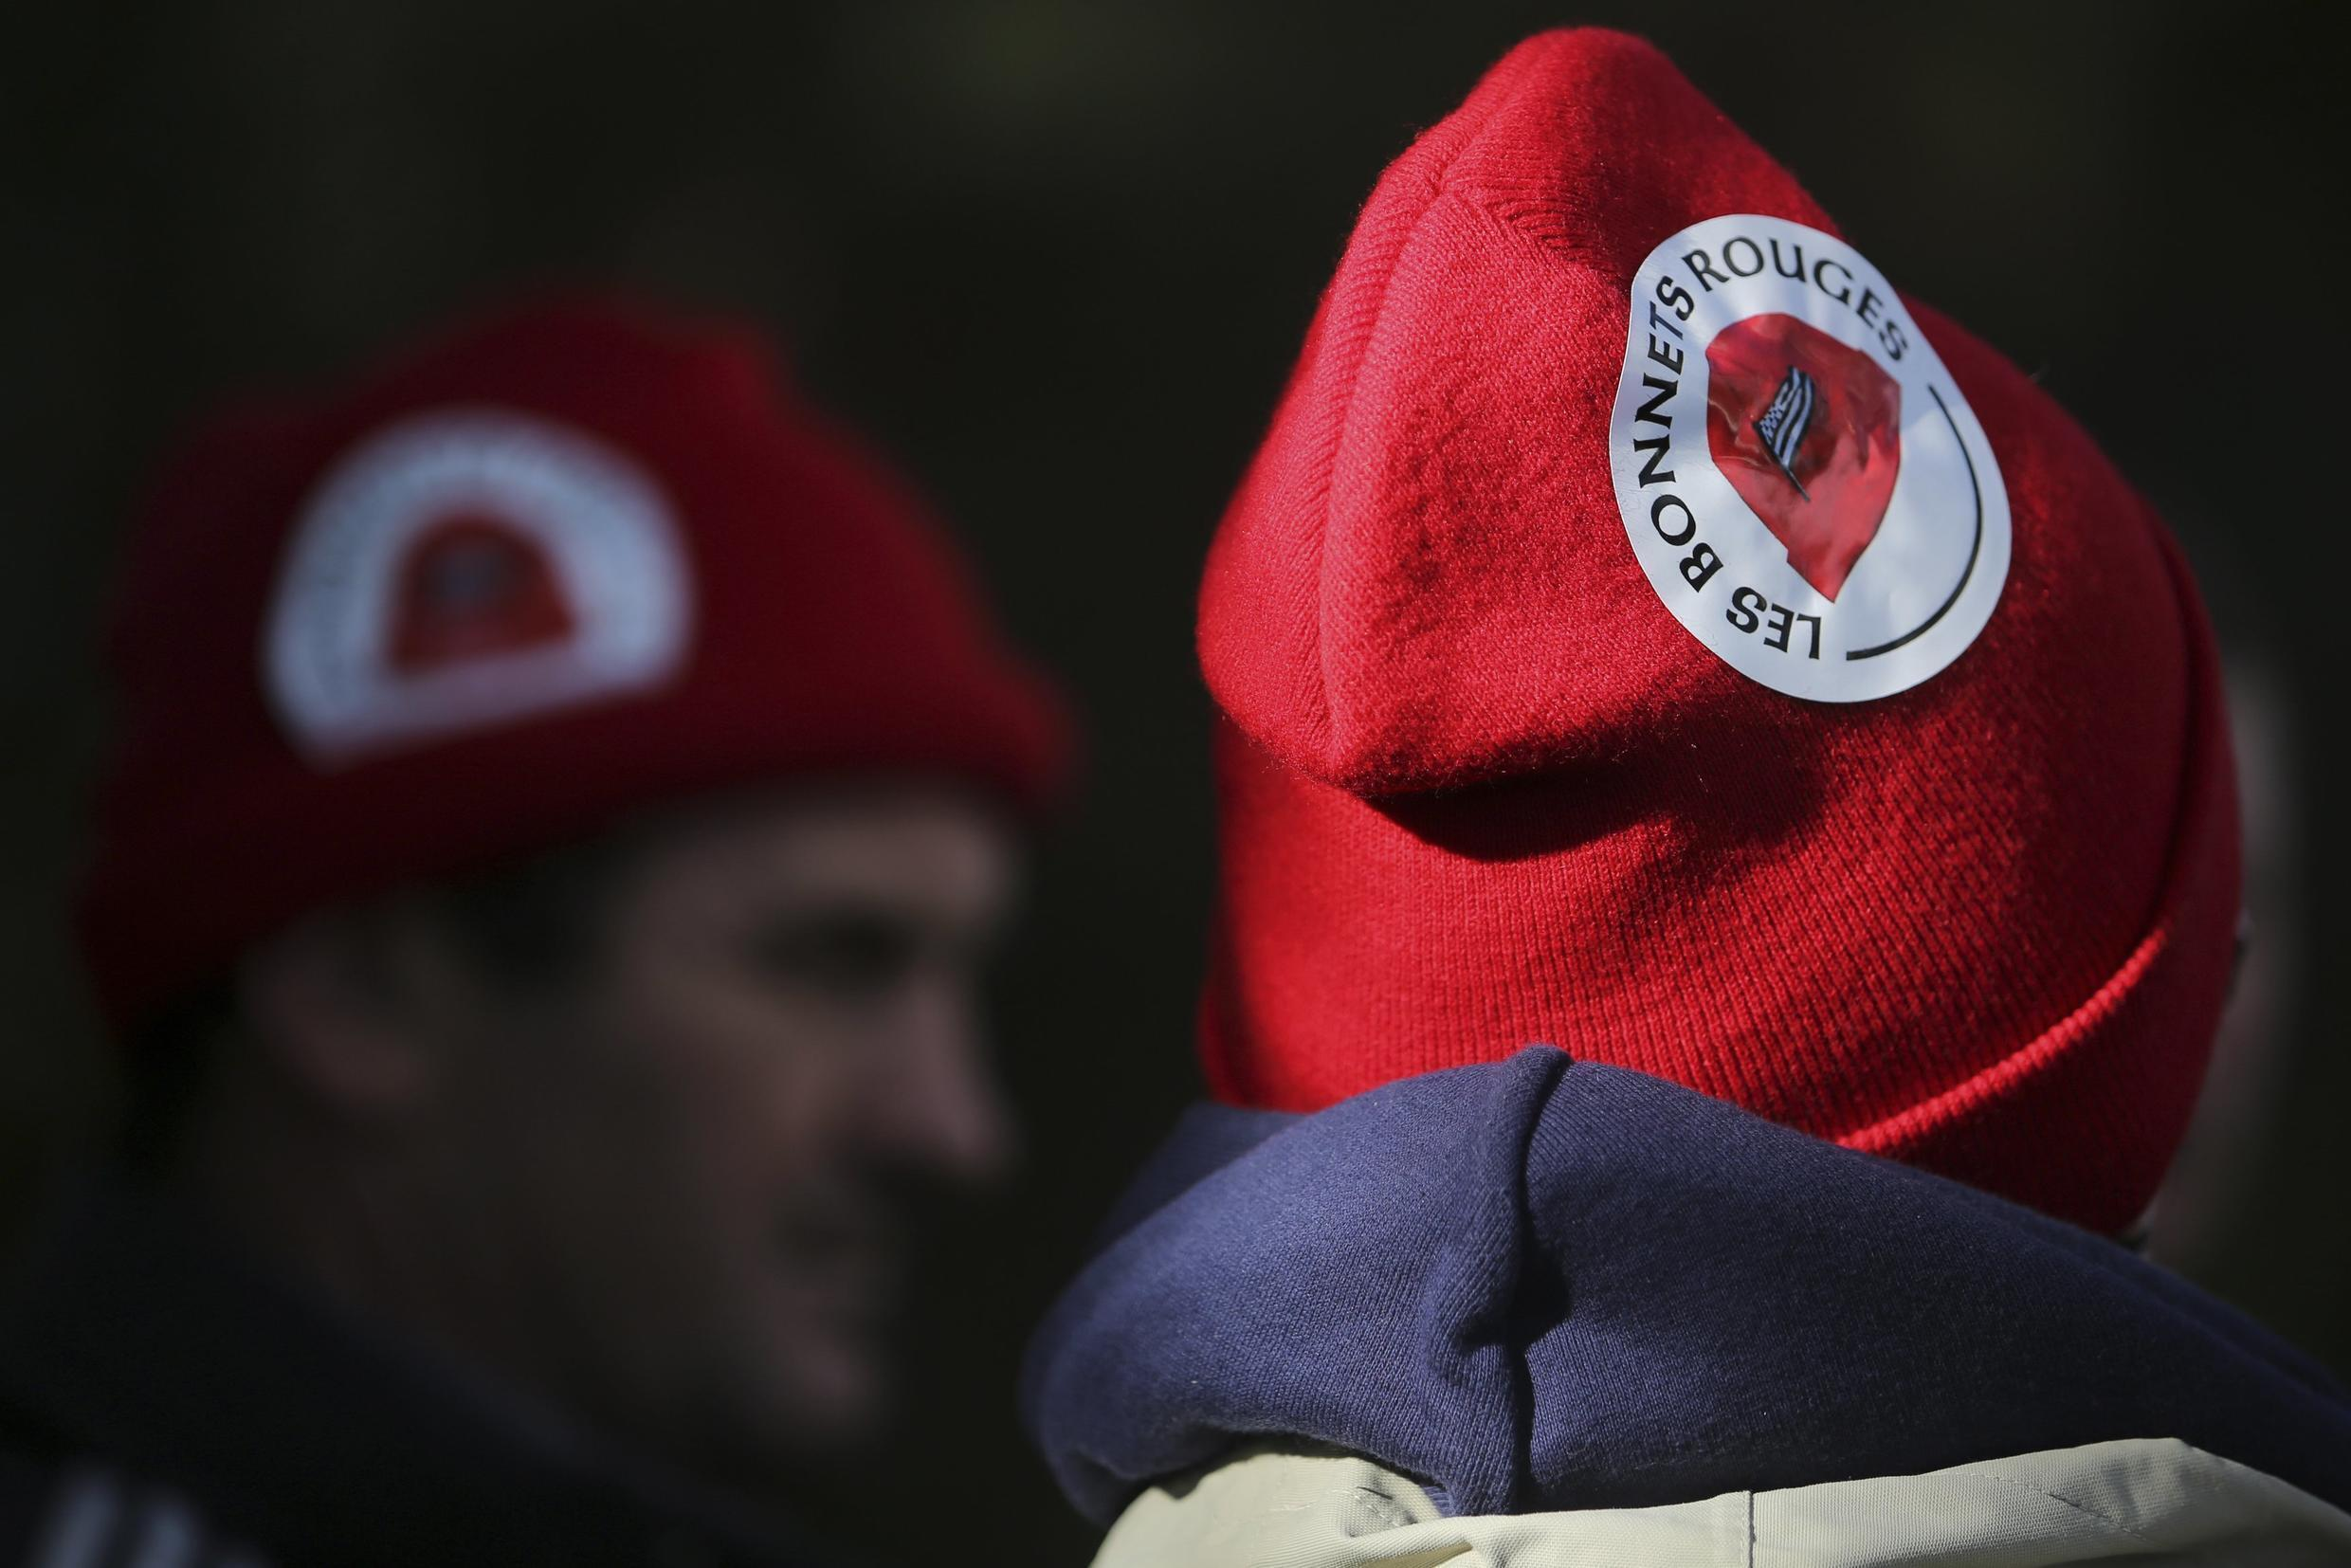 An employee of French firm Tilly-Sabco wears a red cap